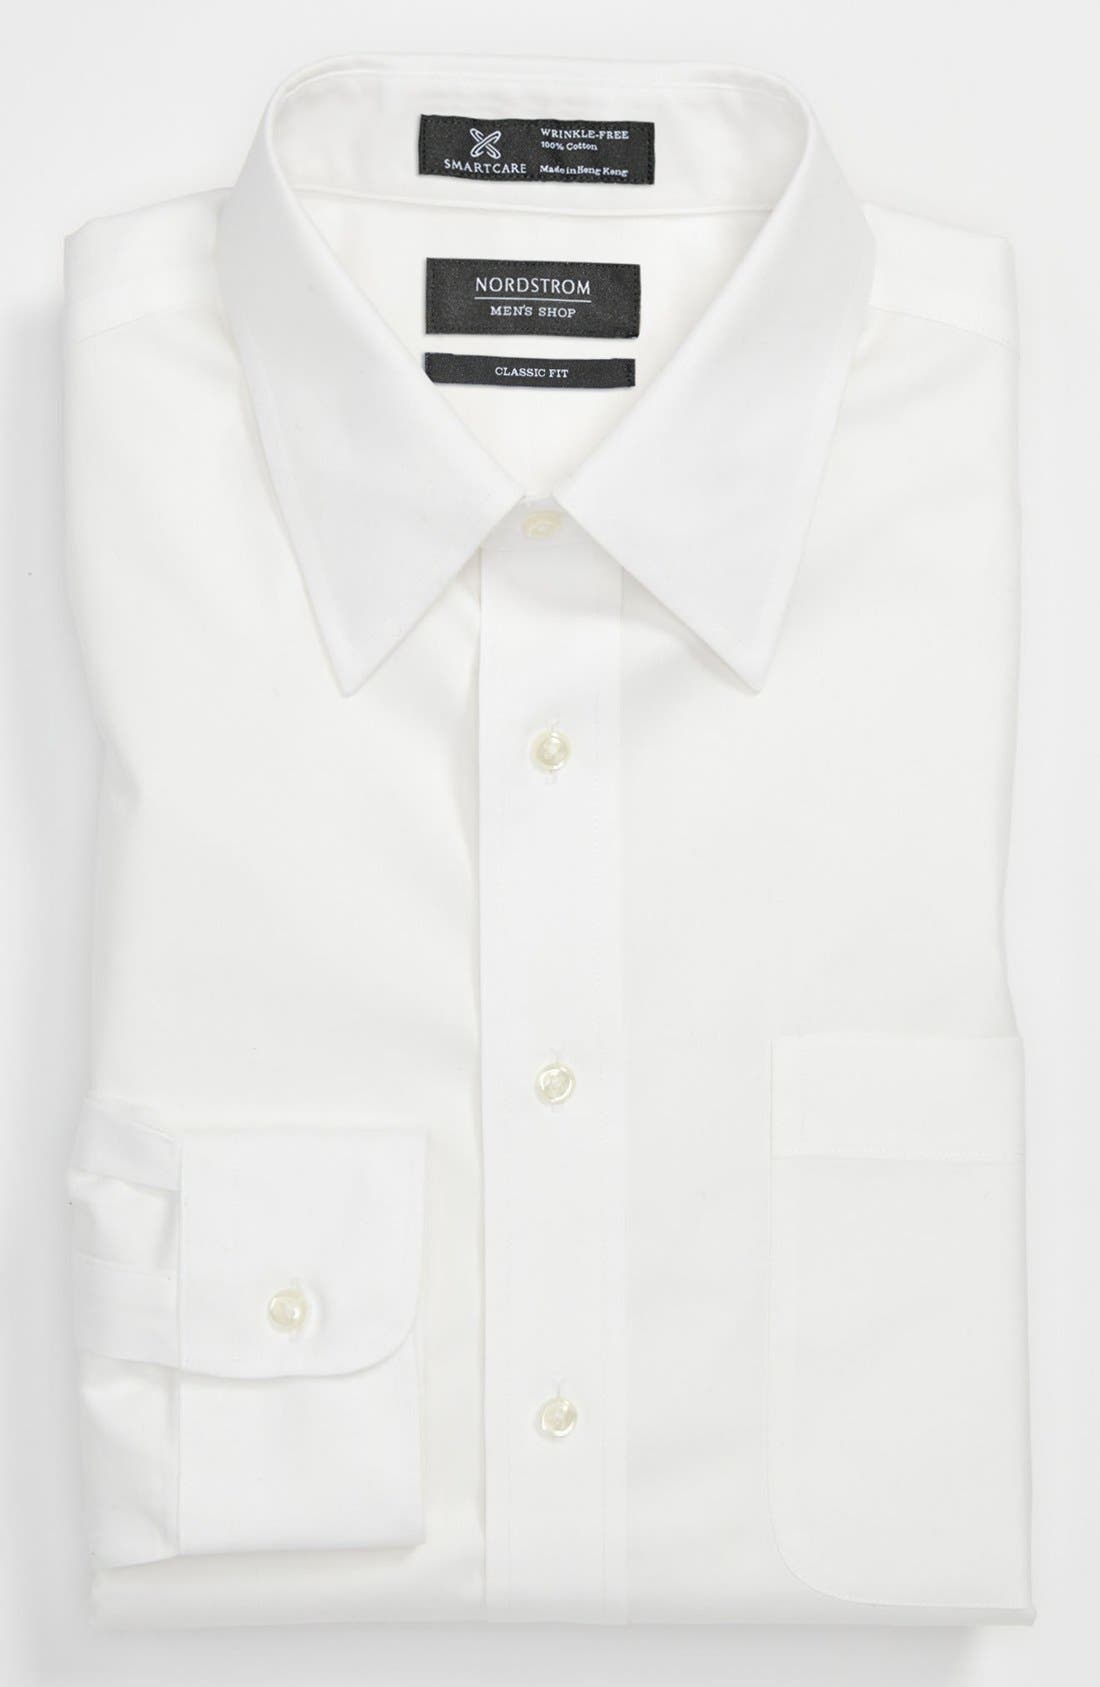 Main Image - Nordstrom Men's Shop Smartcare™ Classic Fit Solid Dress Shirt (Online Only)